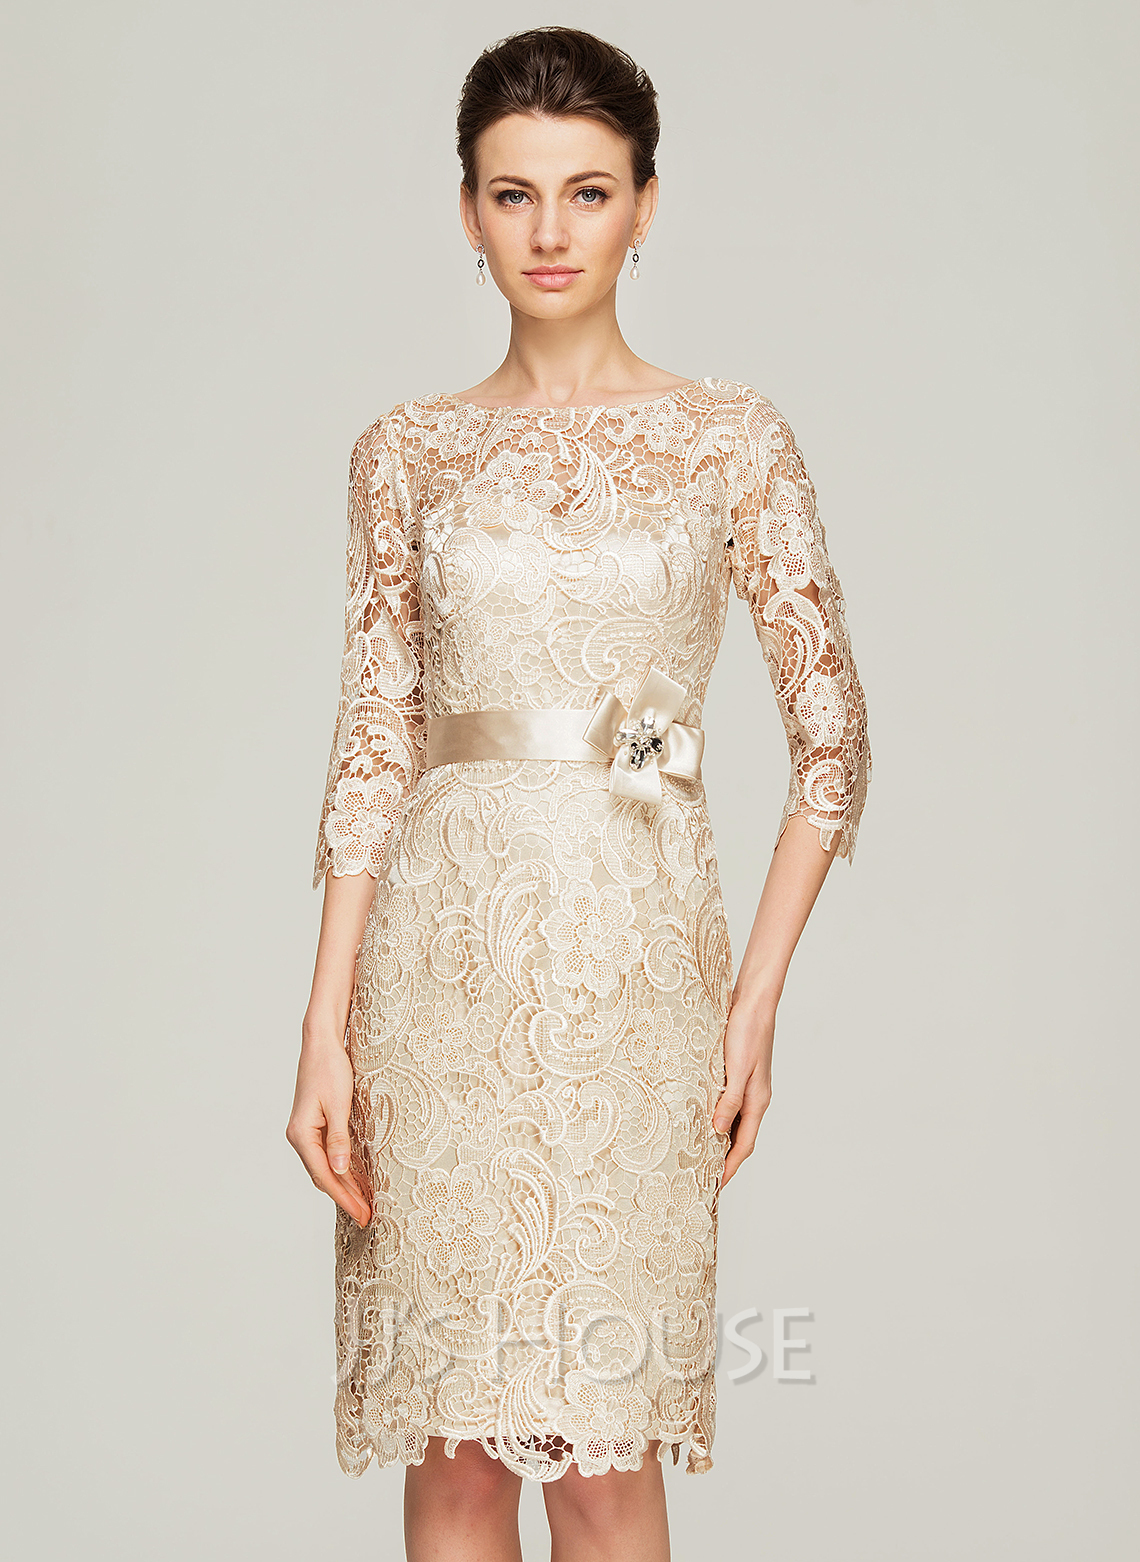 Sheath/Column Scoop Neck Knee-Length Lace Mother of the Bride Dress With Beading Flower(s)